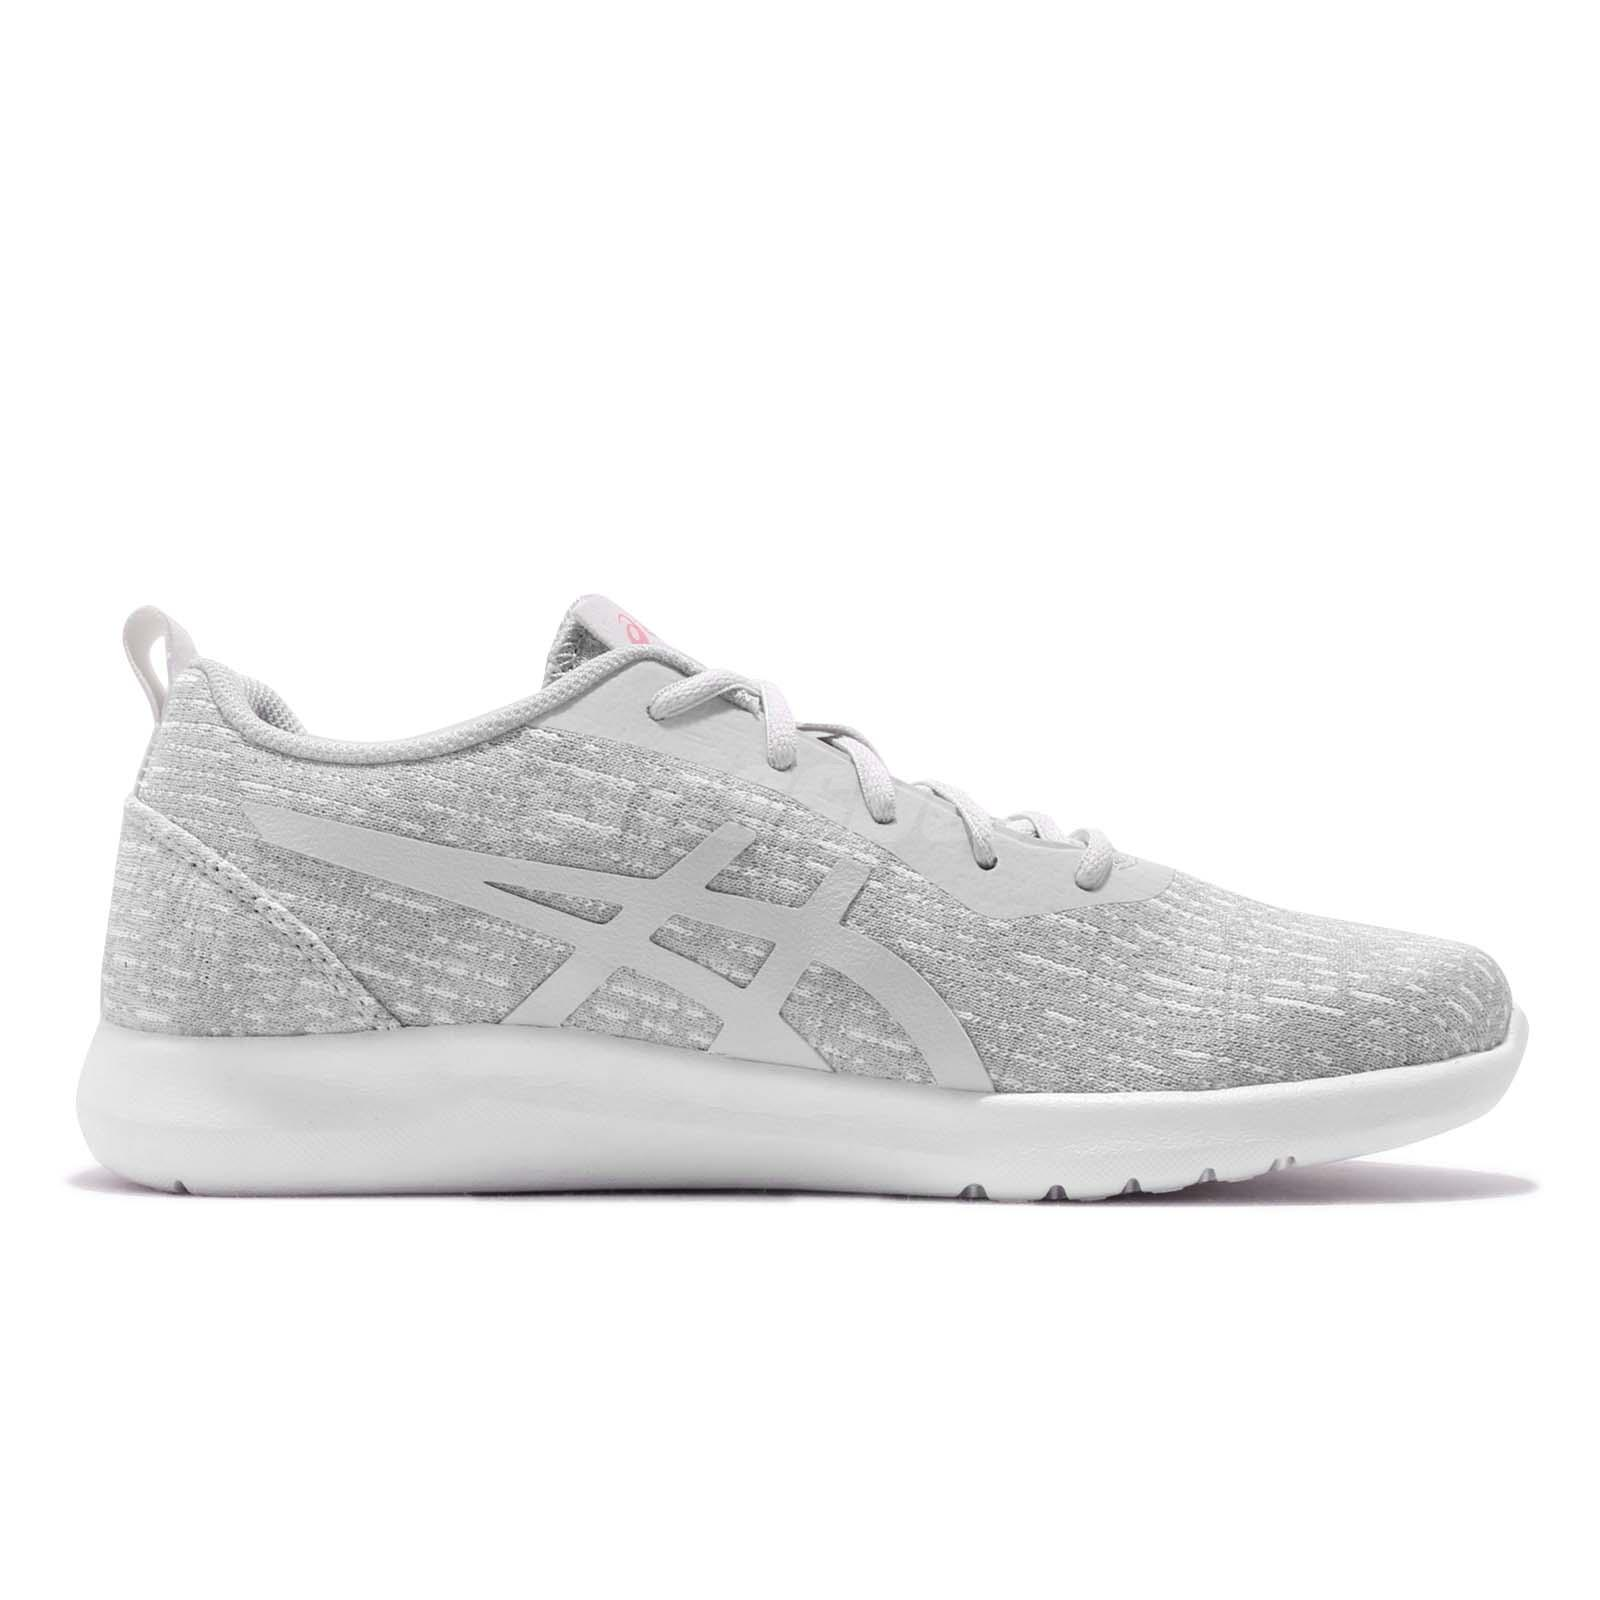 d3001399123 Details about Asics Kanmei 2 Glacier Grey White Womens Running Shoes  Lightweight 1022A011-020